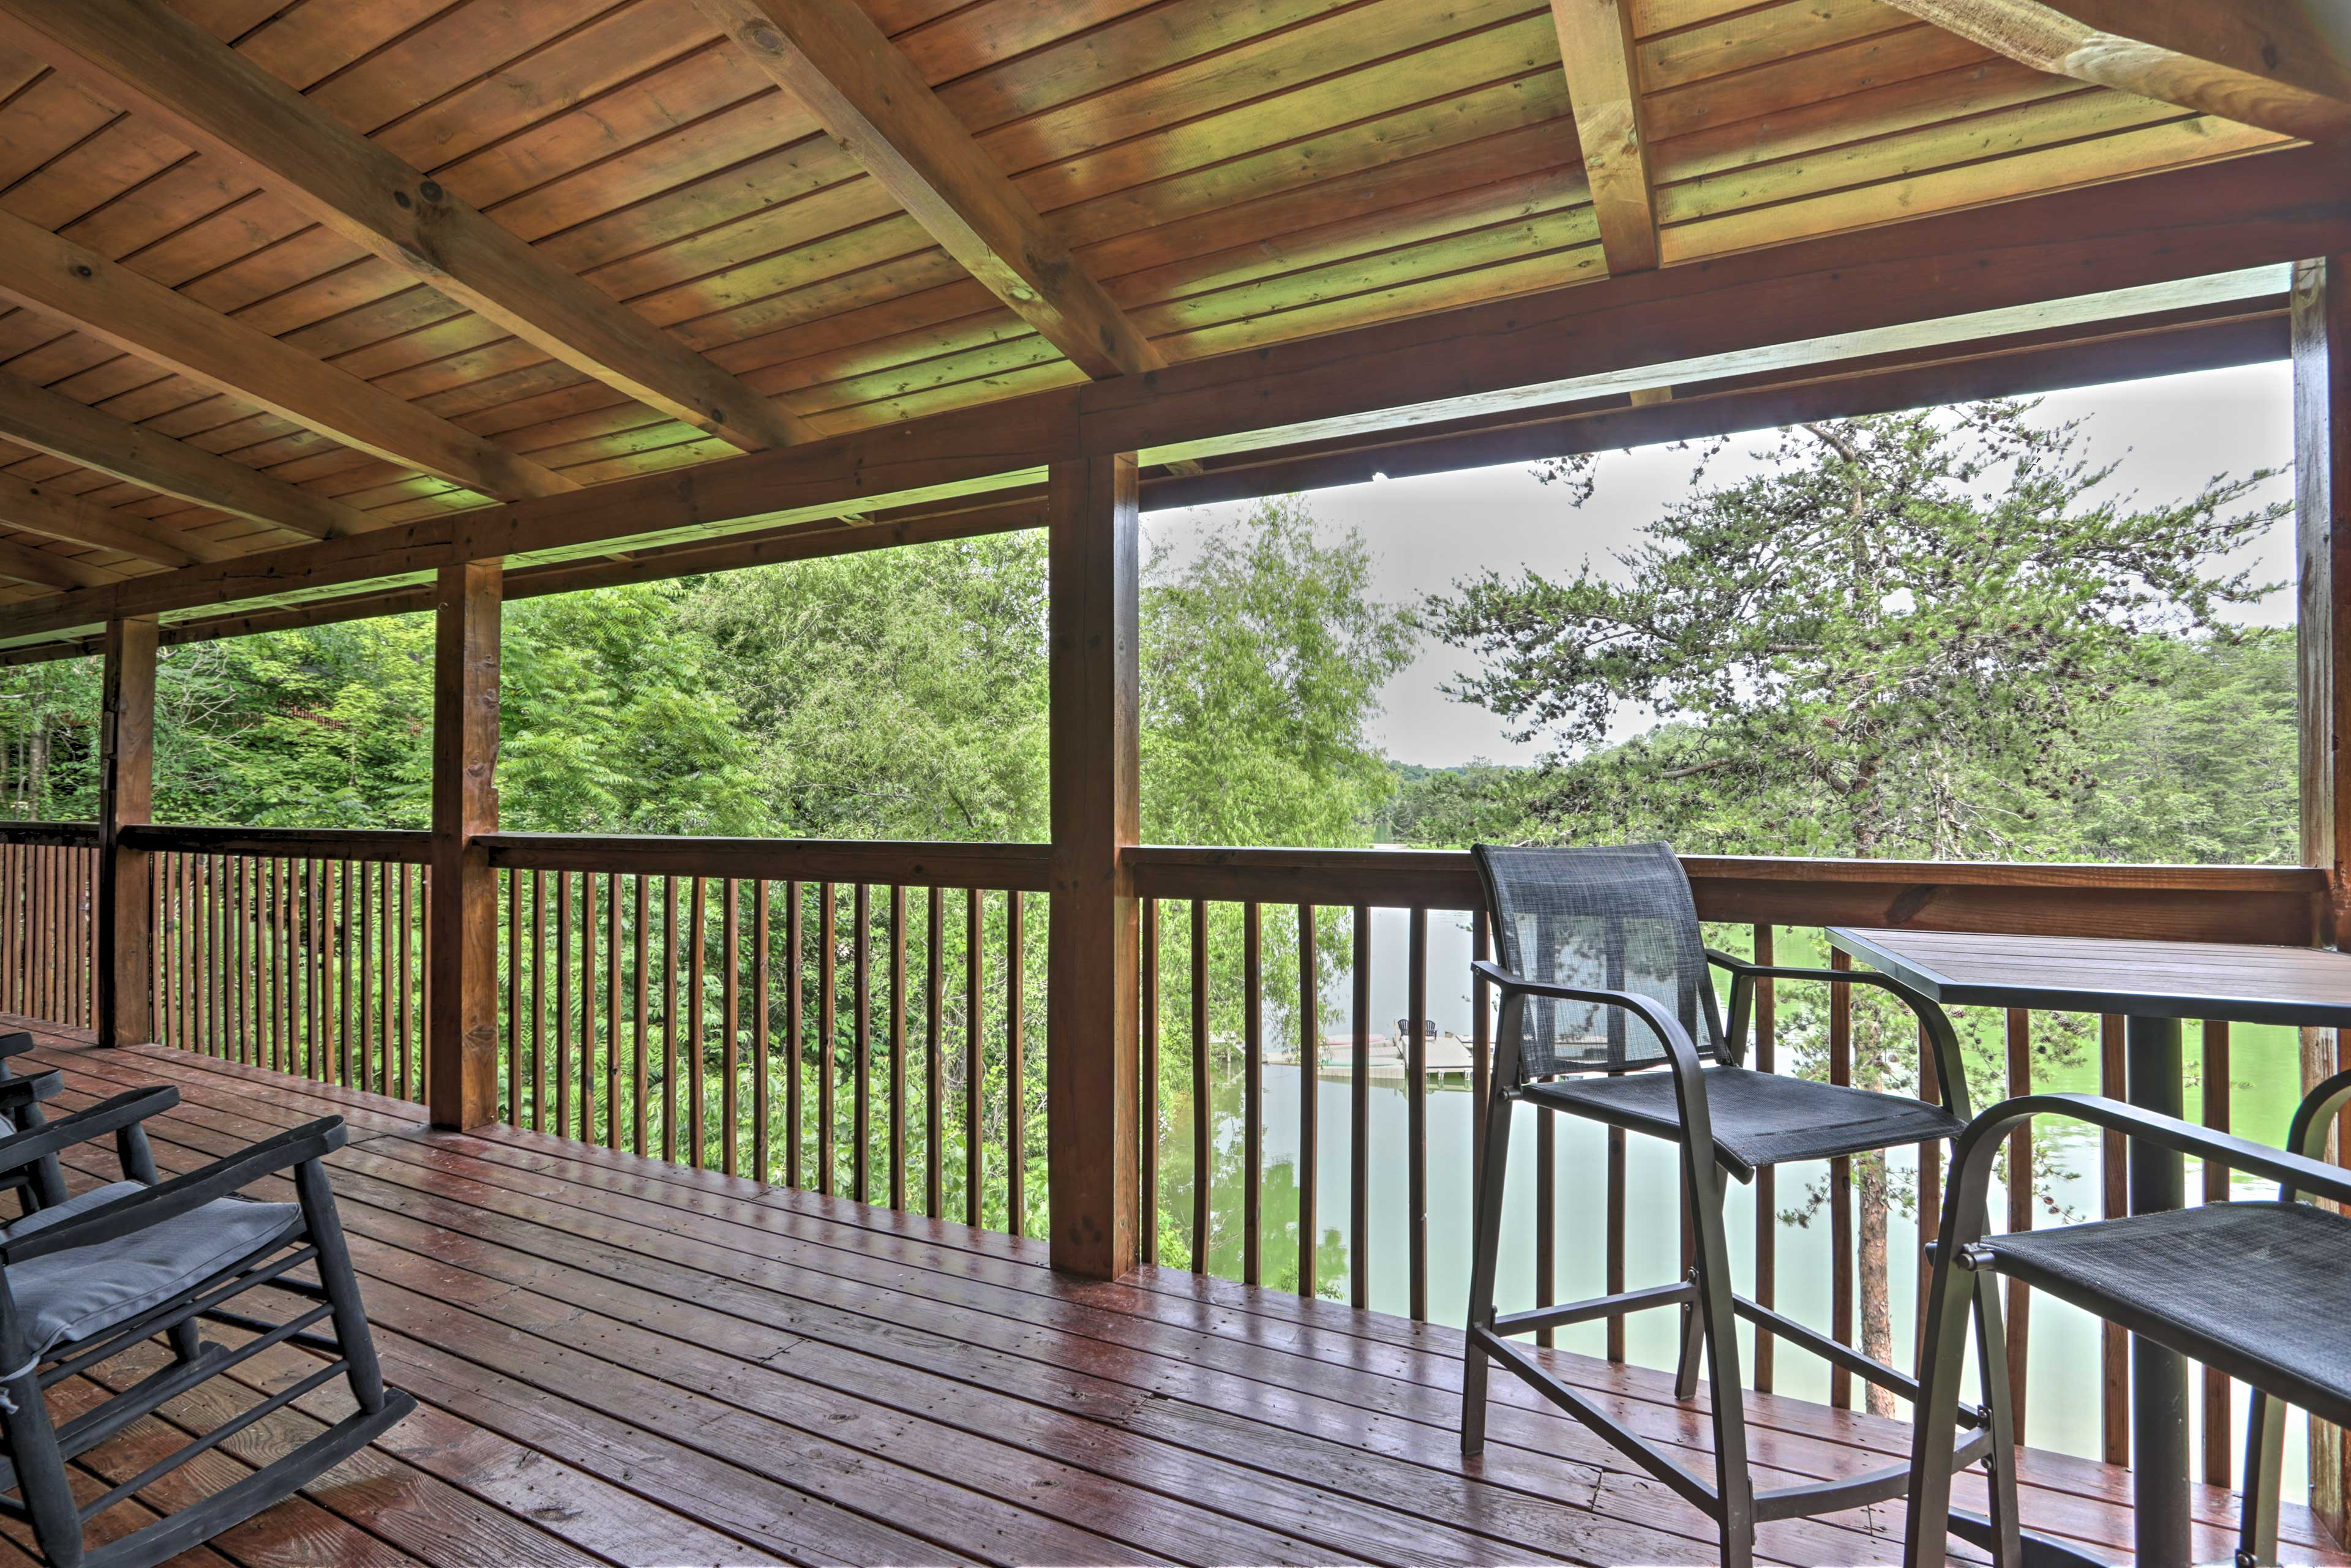 Grab a cup of coffee and relax on the deck.